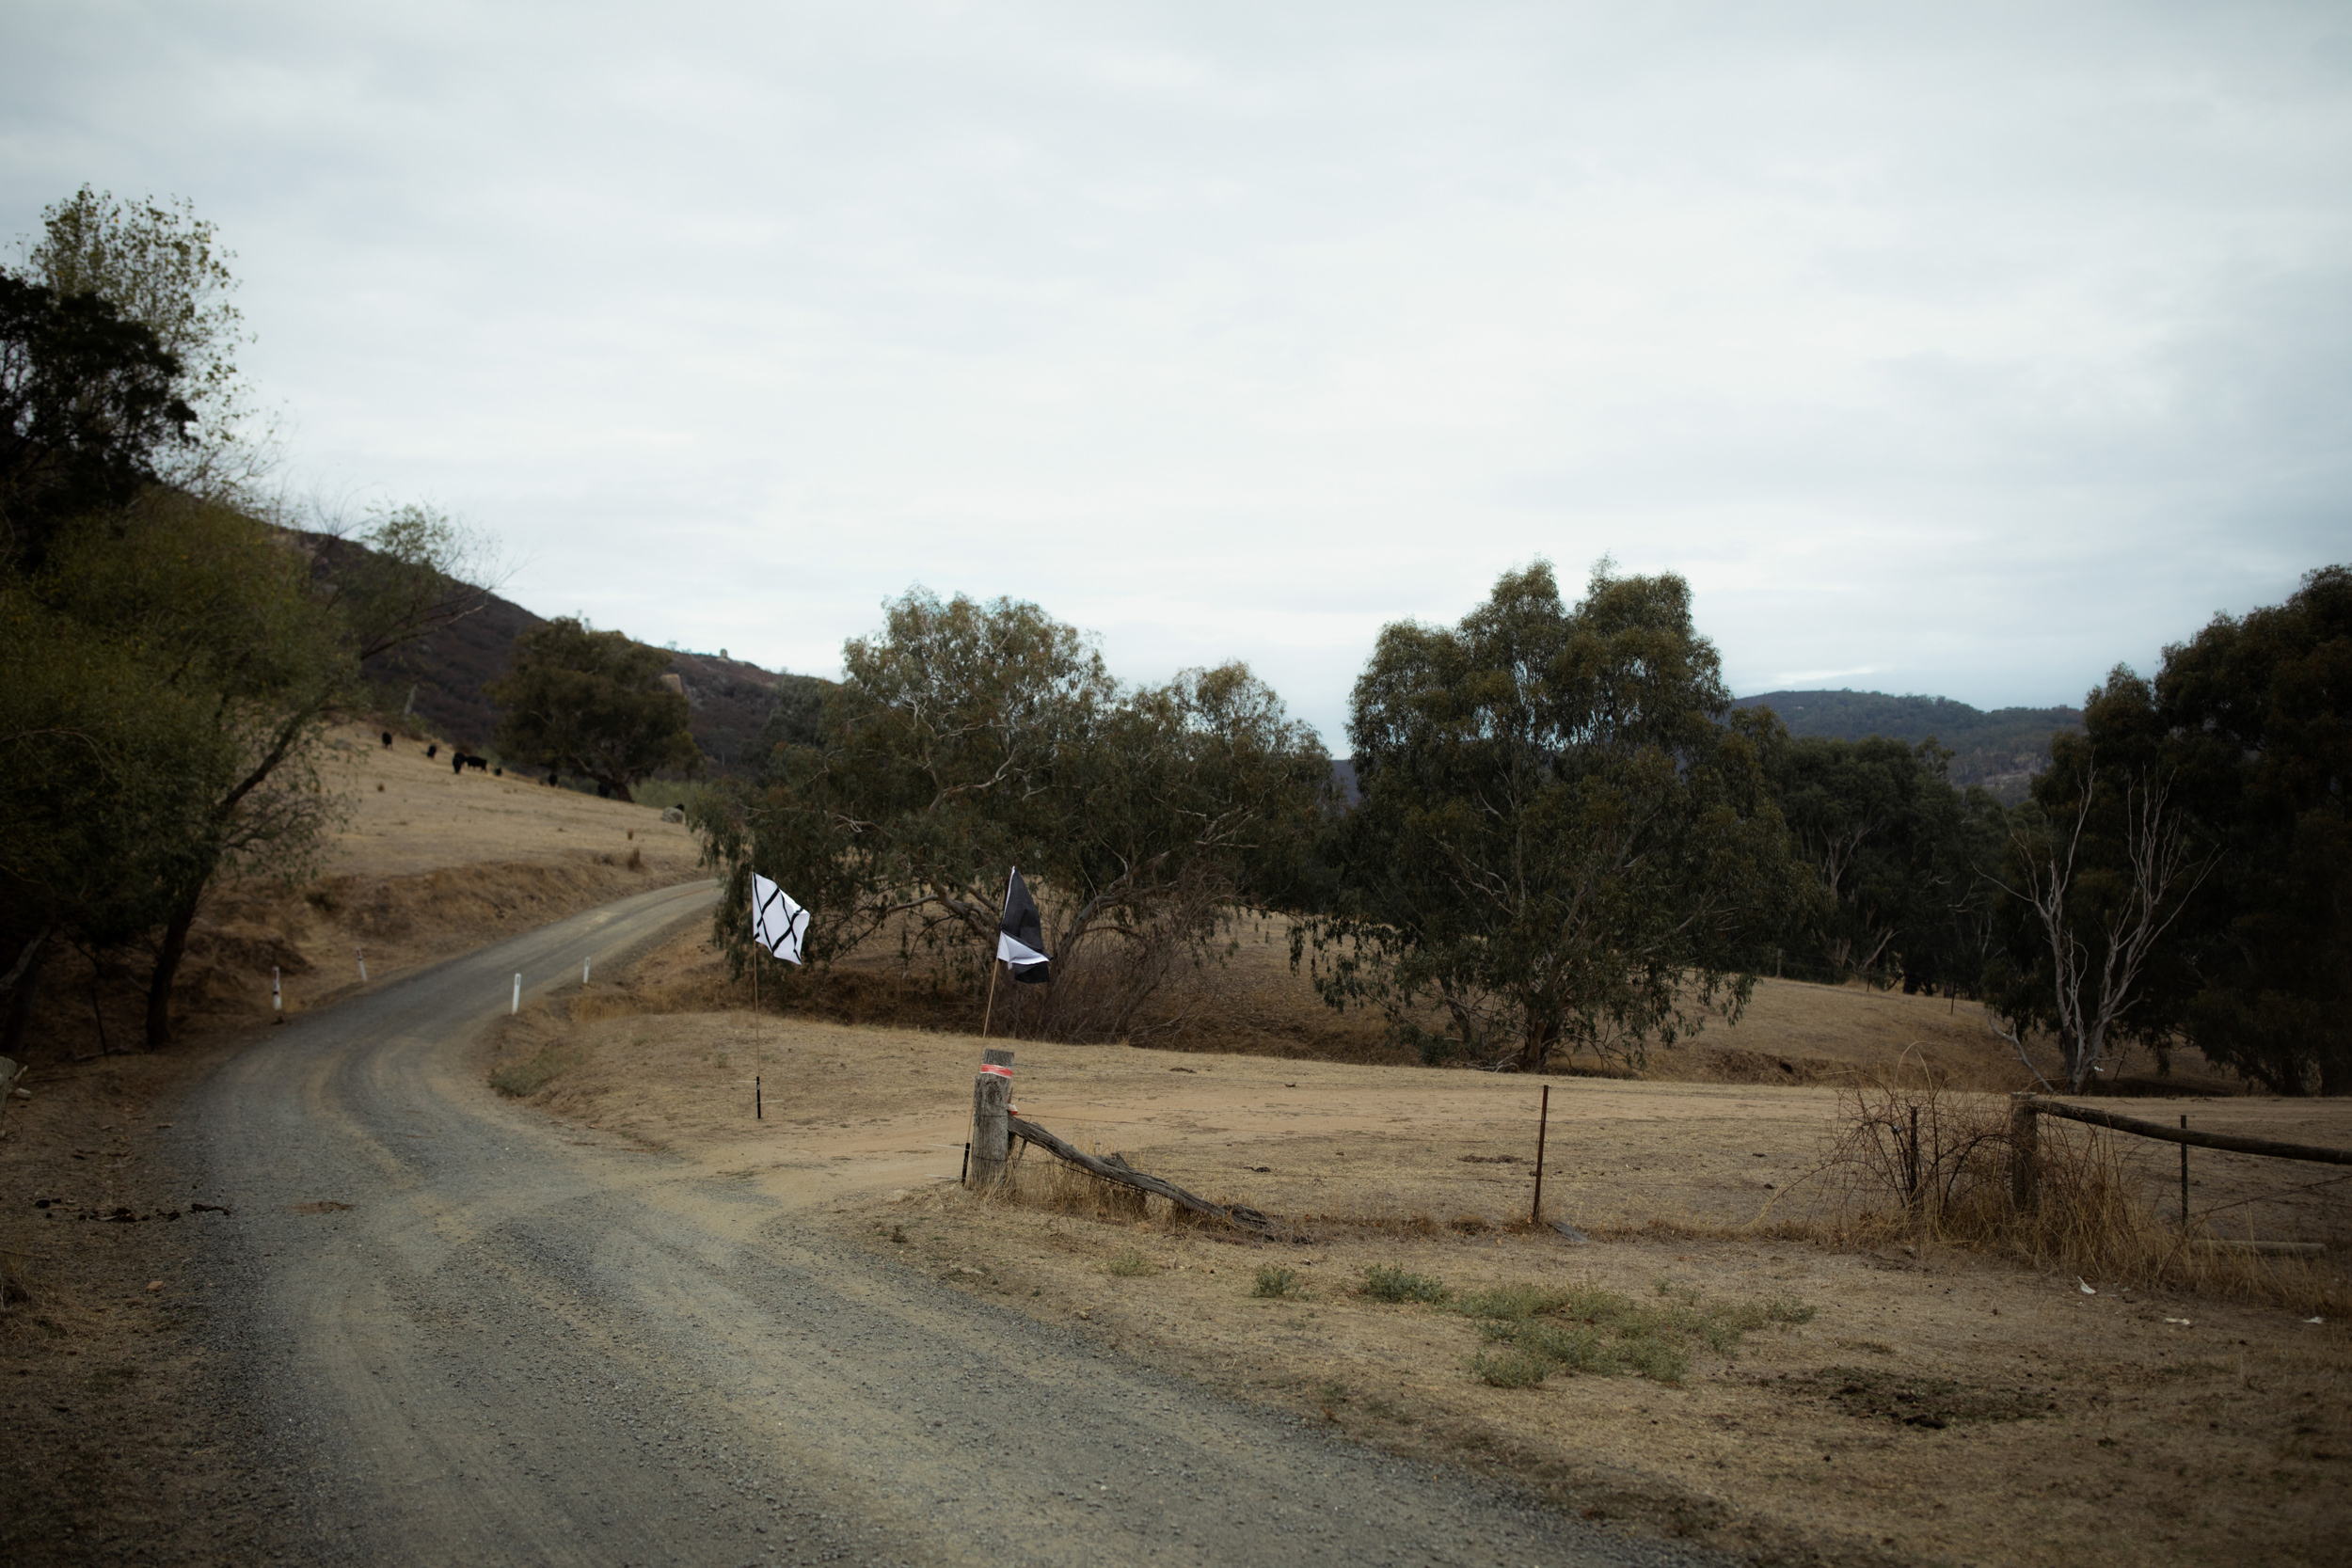 I-Got-You-Babe-Weddings-Claire-Dave-Trawol-VIC-Country-Property-Wedding002.JPG